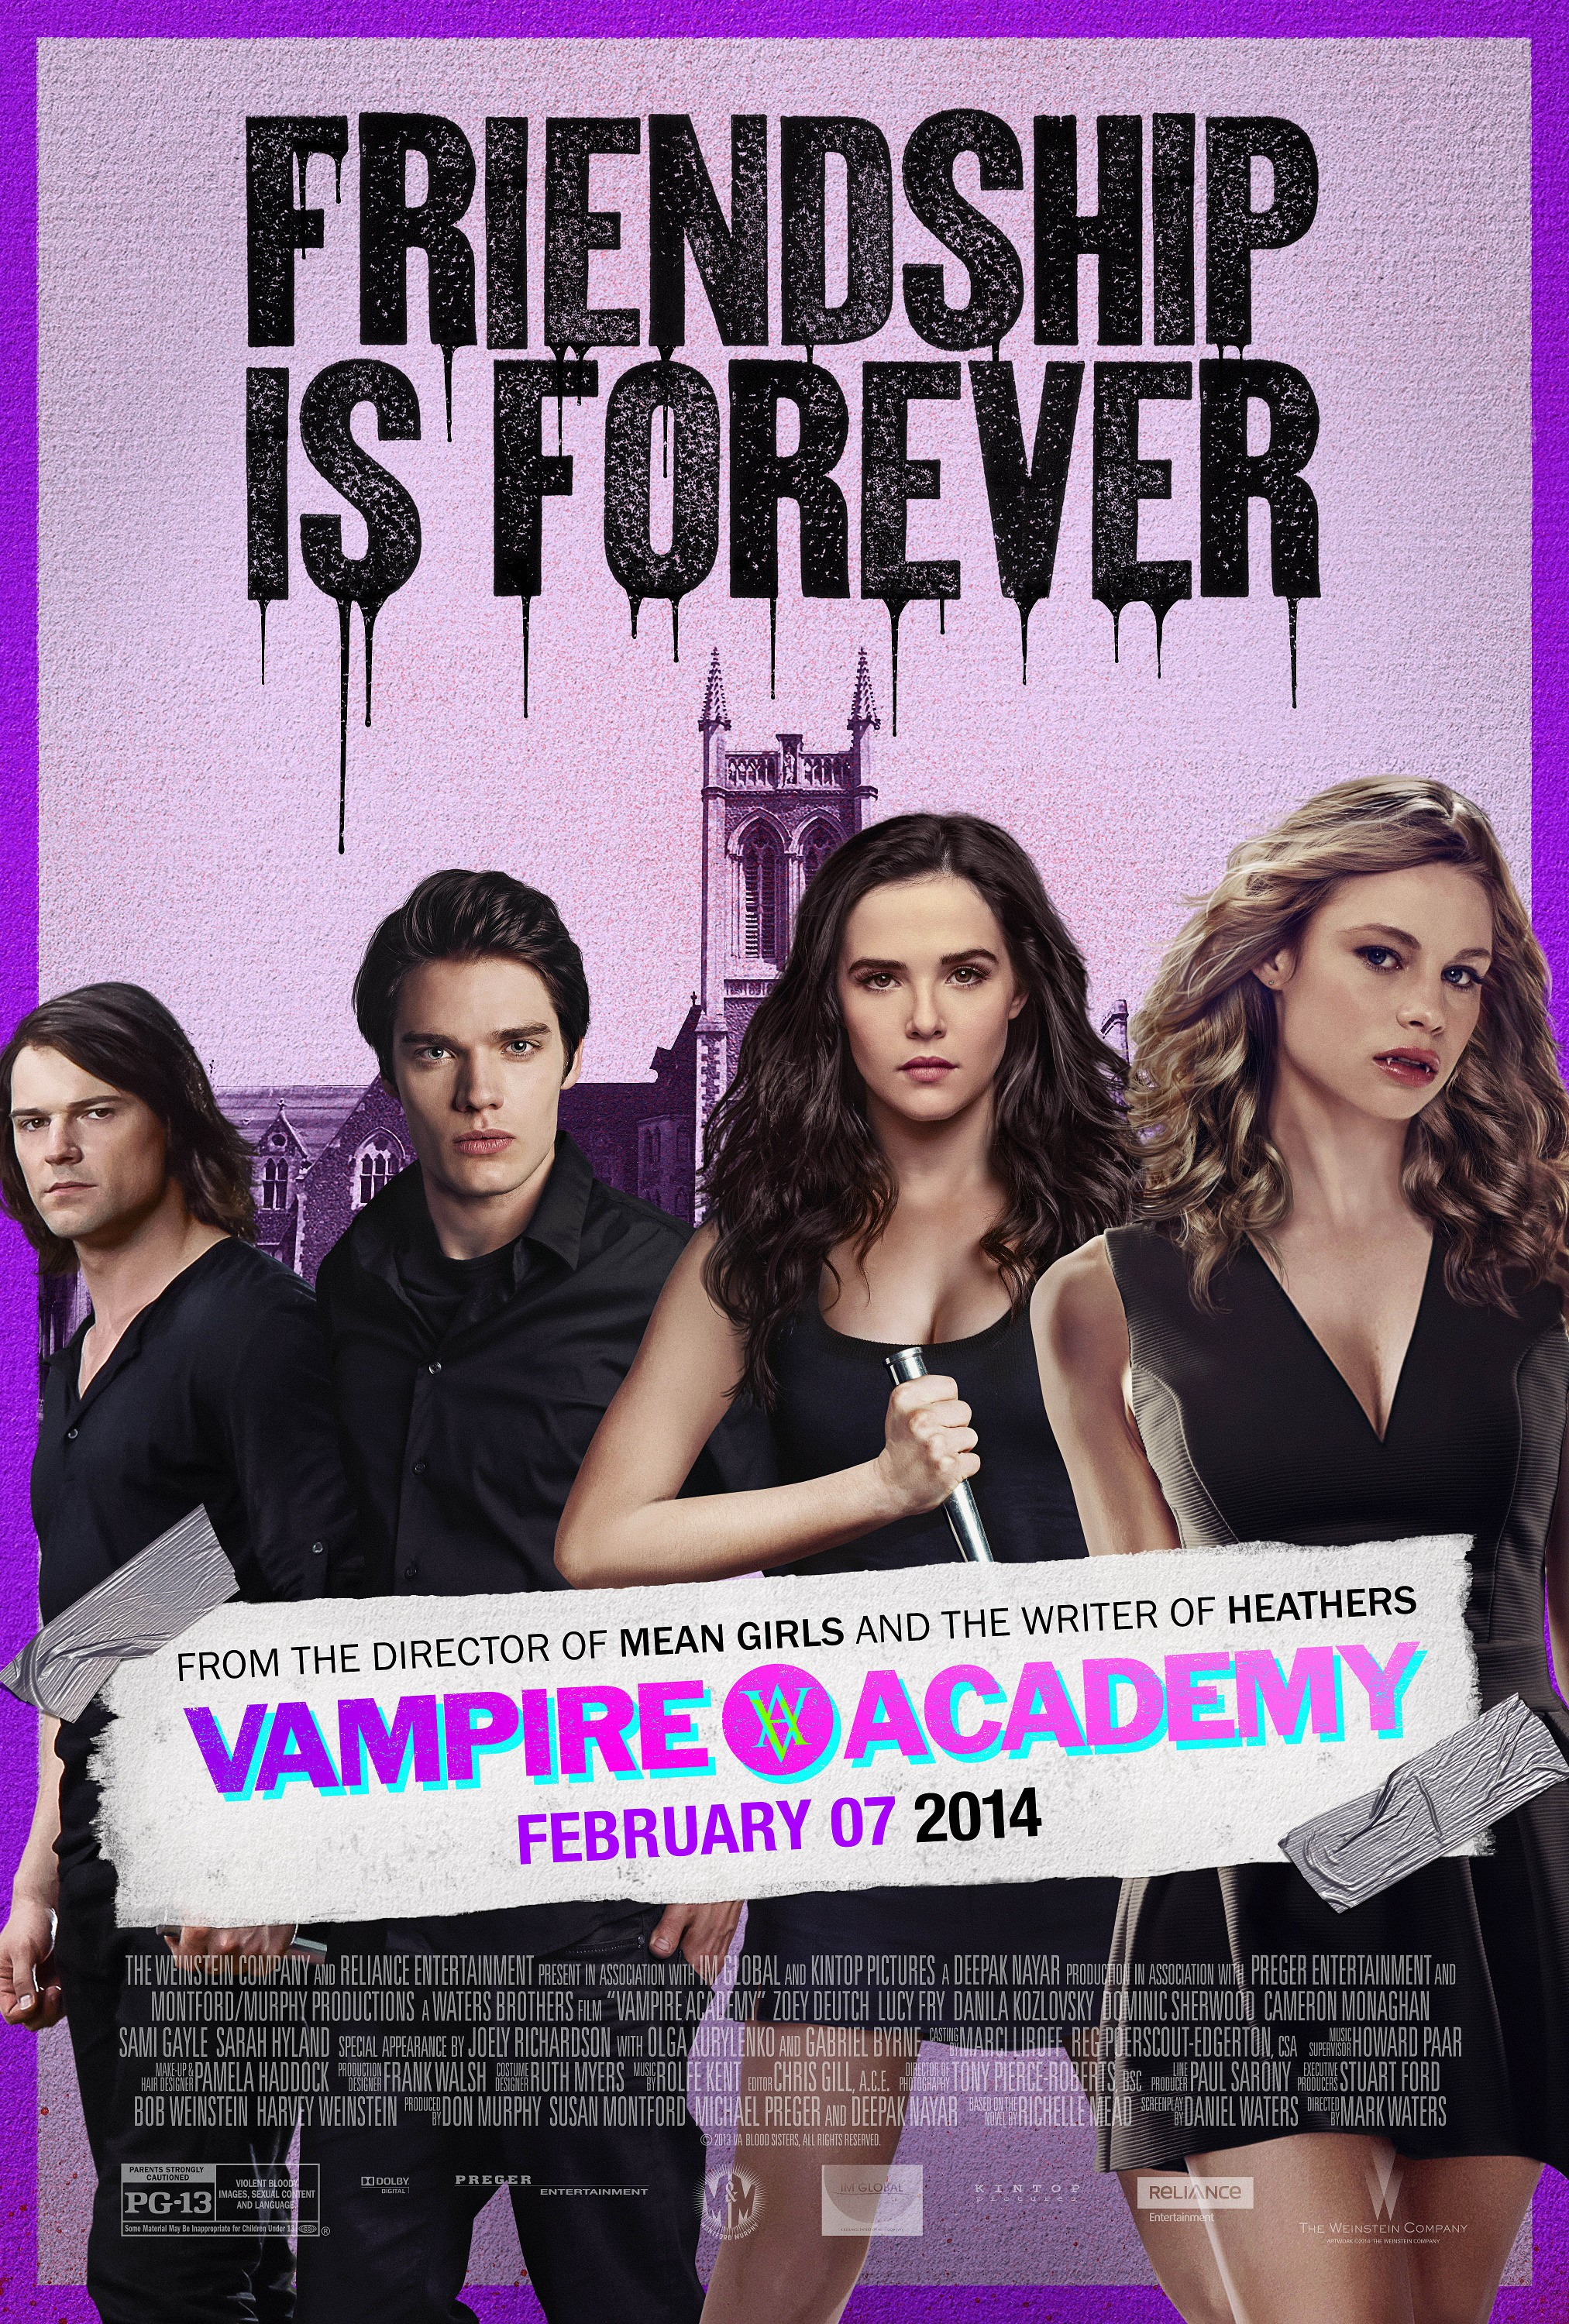 VAMPIRE ACADEMY BLOOD SISTERS-Official Poster Banner PROMO POSTER-29JANEIRO2014